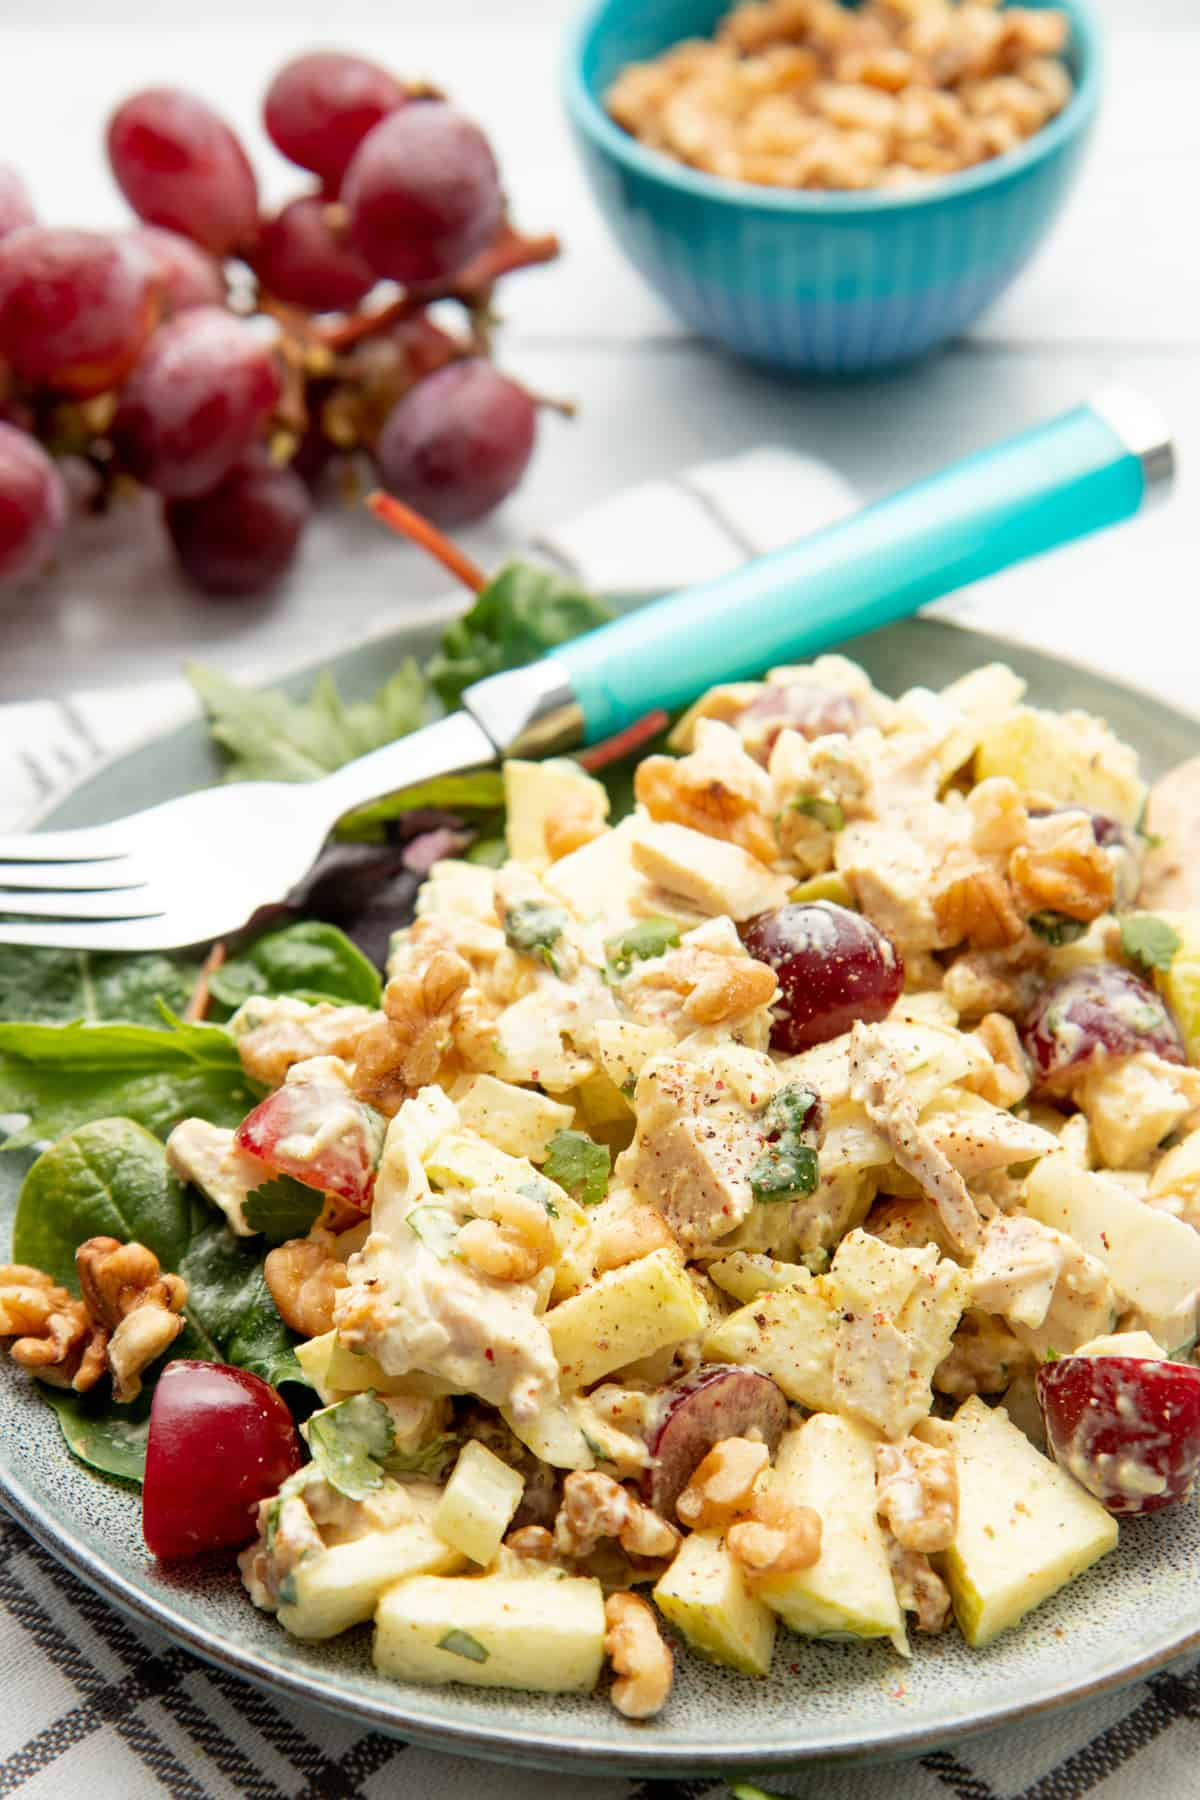 A gray plate holds chicken salad and lettuces. A blue fork rests on the plate. Grapes and walnuts are also on the table.